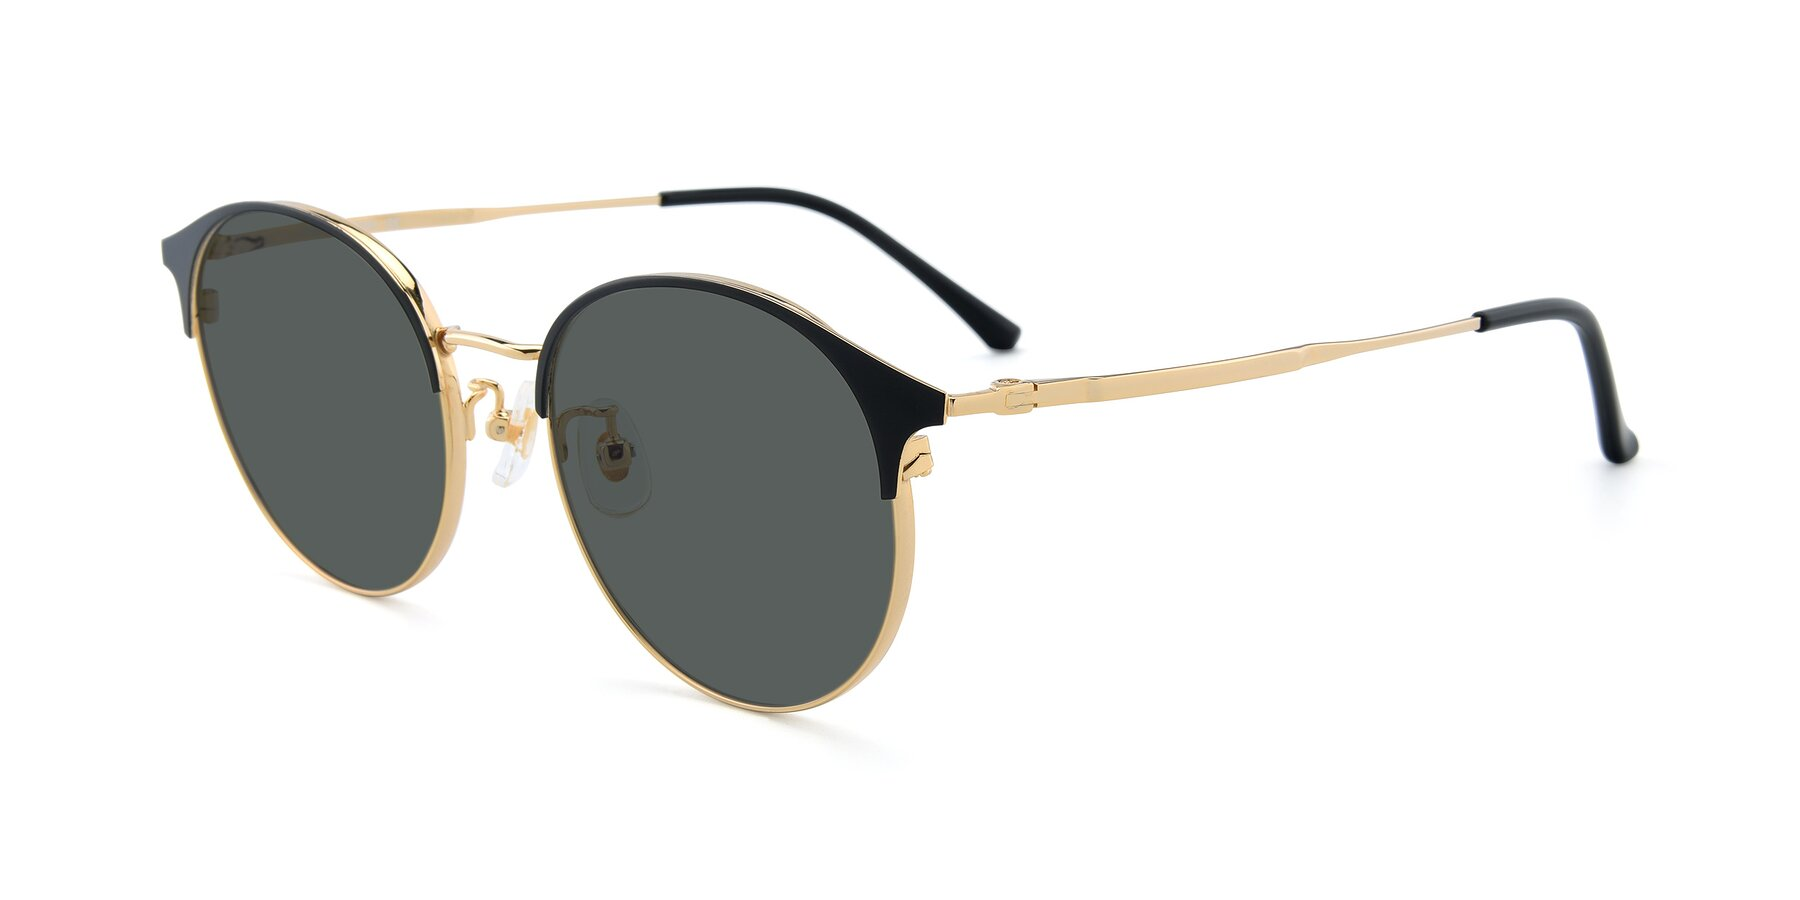 Angle of XC-8031 in Black-Gold with Gray Polarized Lenses